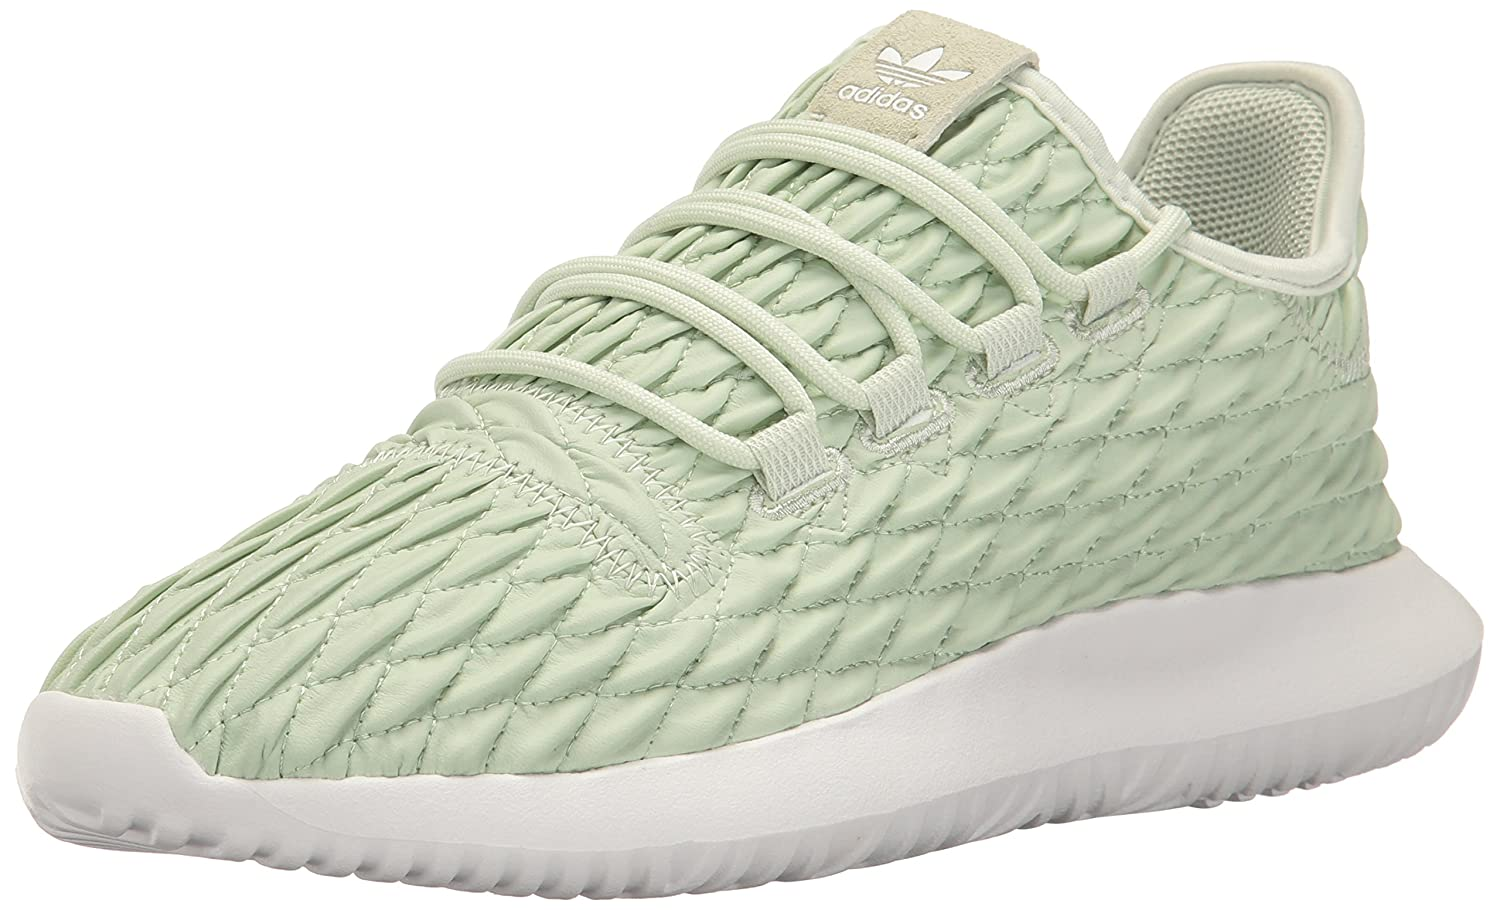 adidas Originals Women's Tubular Shadow Fashion Sneakers B01HJ9IHEU 5 M US|Linen Green Linen Green/White